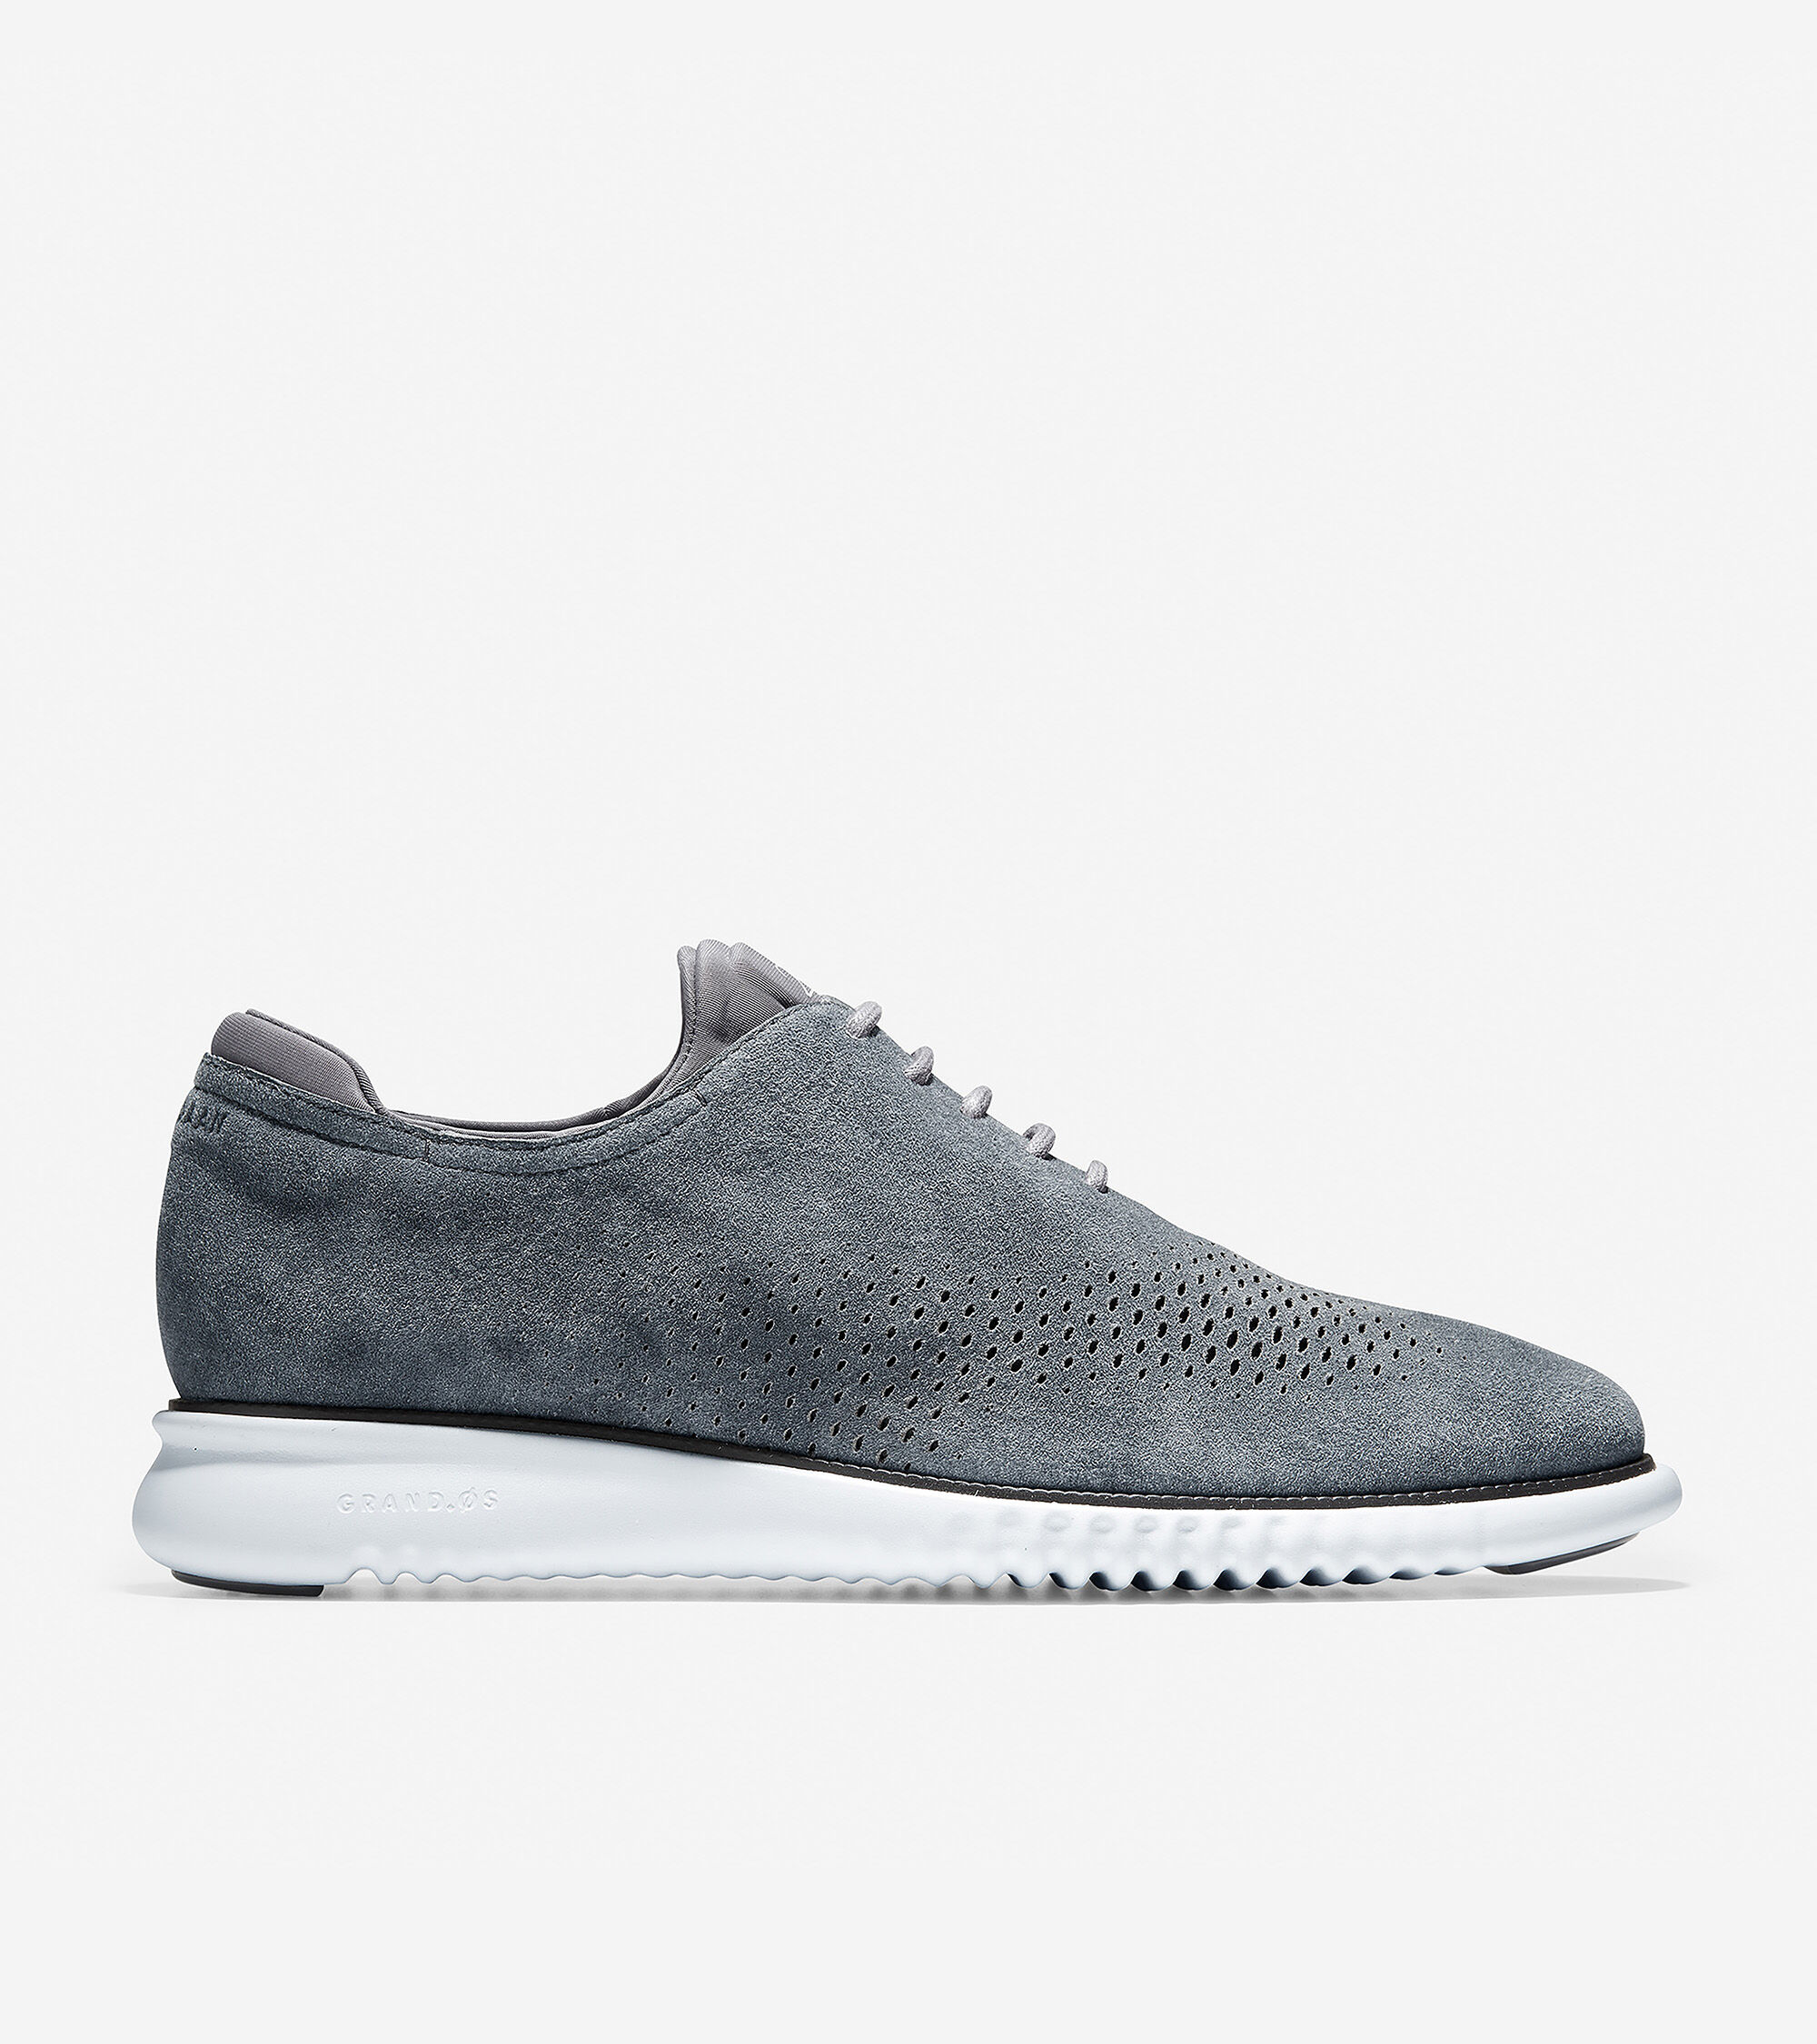 Quiet Shade Suede-Optic White   Cole Haan